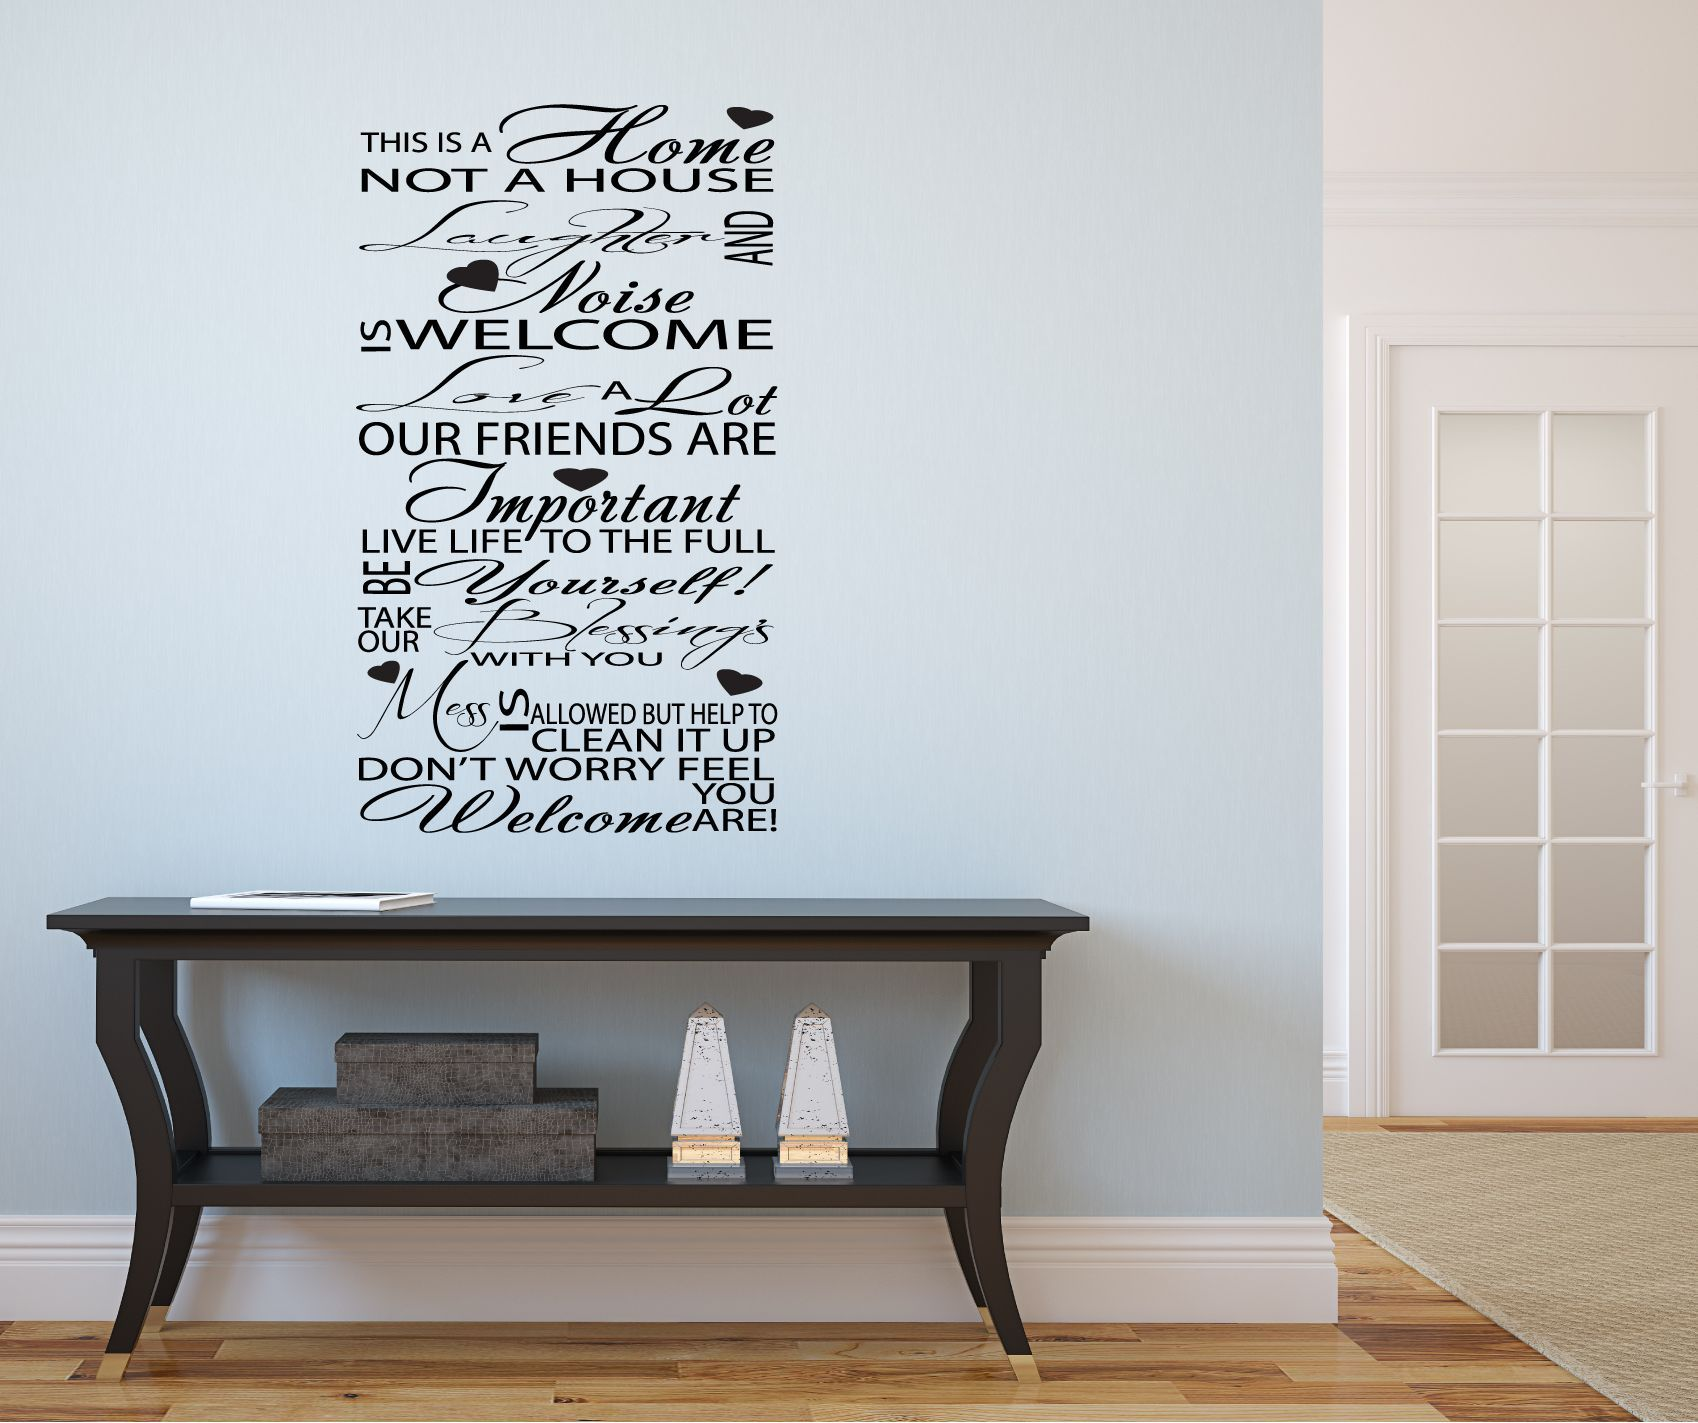 Wall Sticker Quotes Quotes Wall Decals  Typography Hallwaylounge Vinyl Art Wall